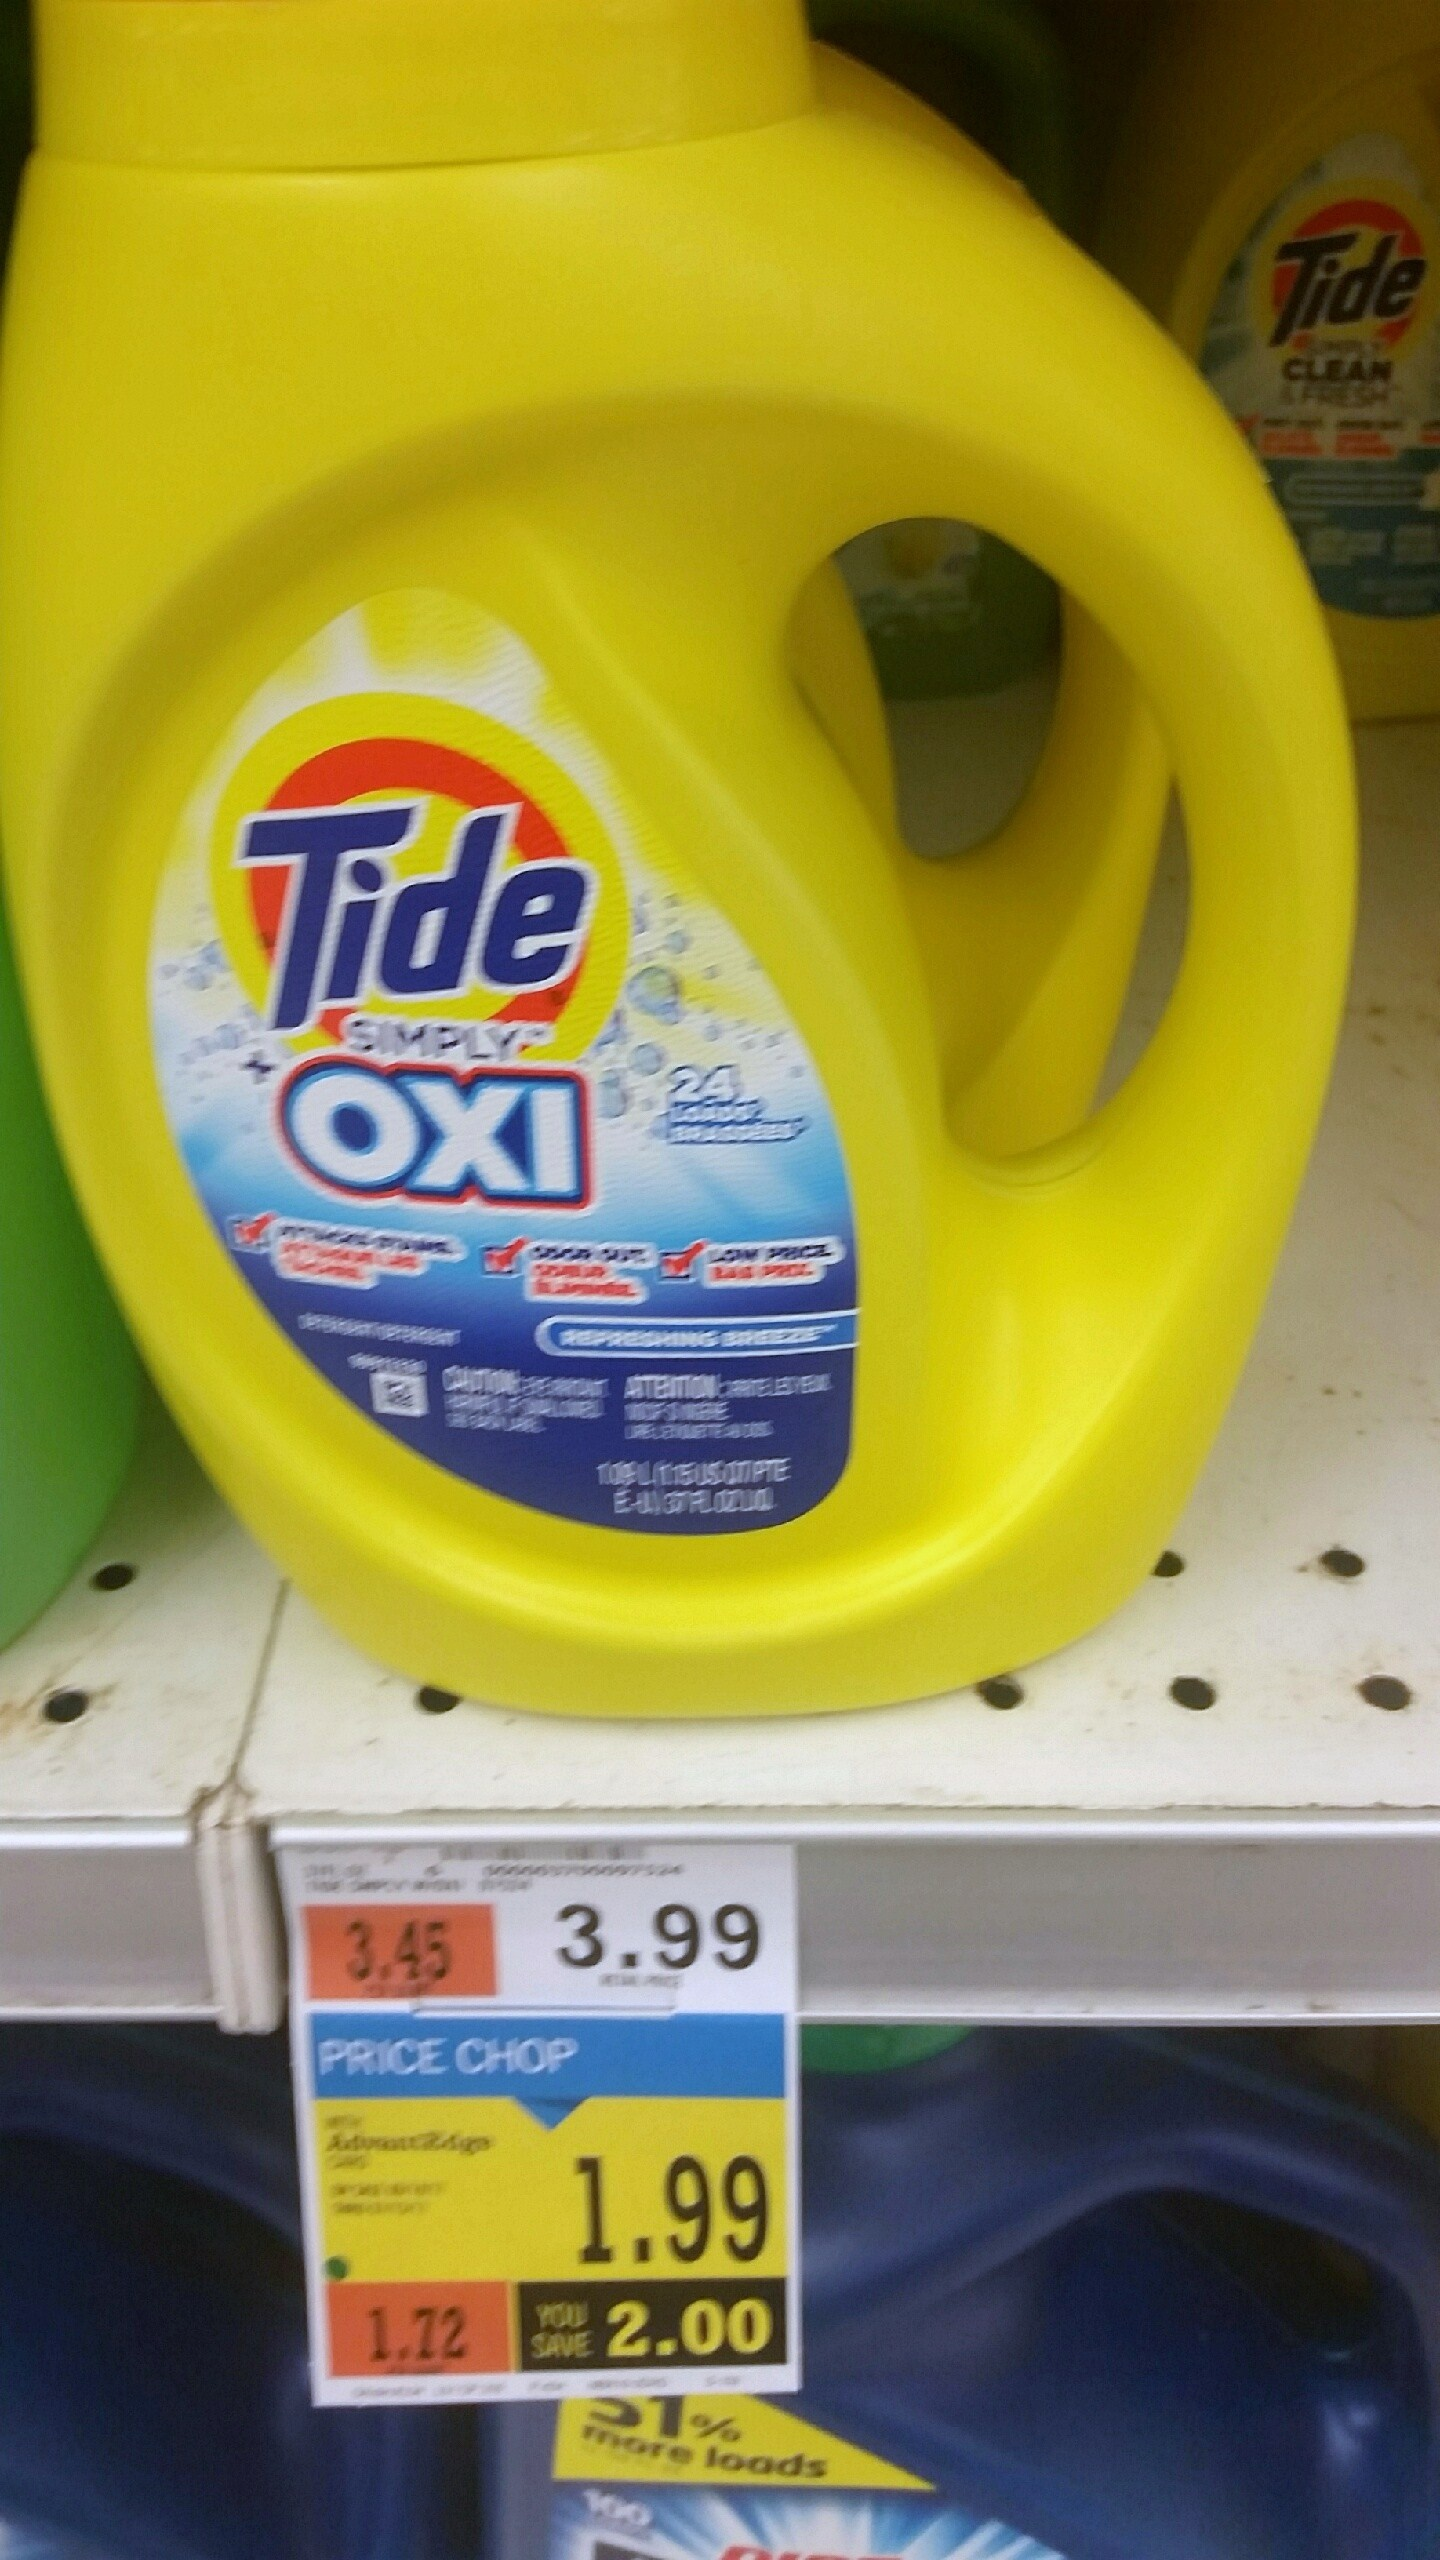 Free Tide Simply Oxi Detergent At Price Chopper!!! - My Momma Taught Me - Free Printable Tide Simply Coupons